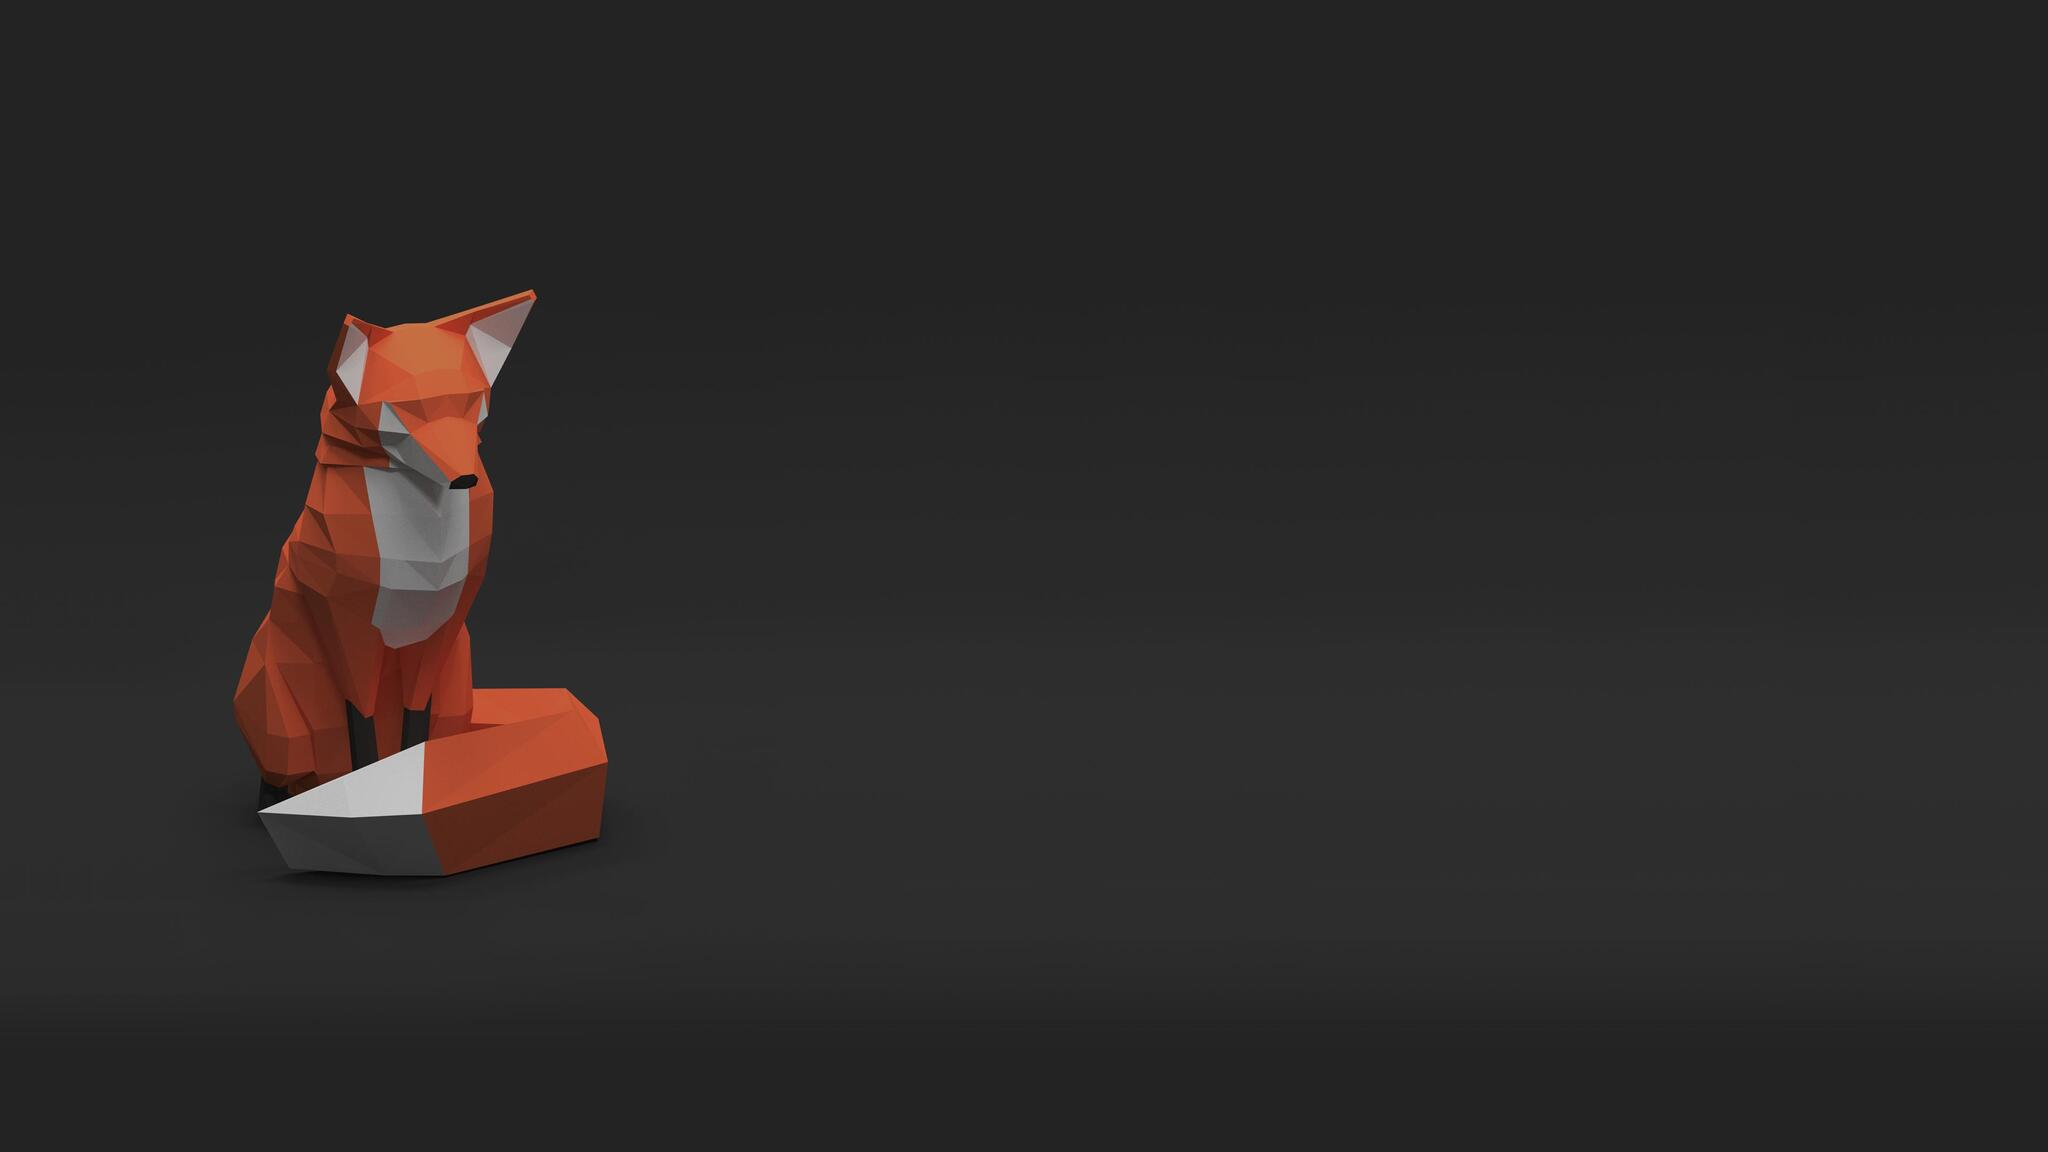 3d Wallpaper For Mobile 480x800 2048x1152 Low Poly Fox 2048x1152 Resolution Hd 4k